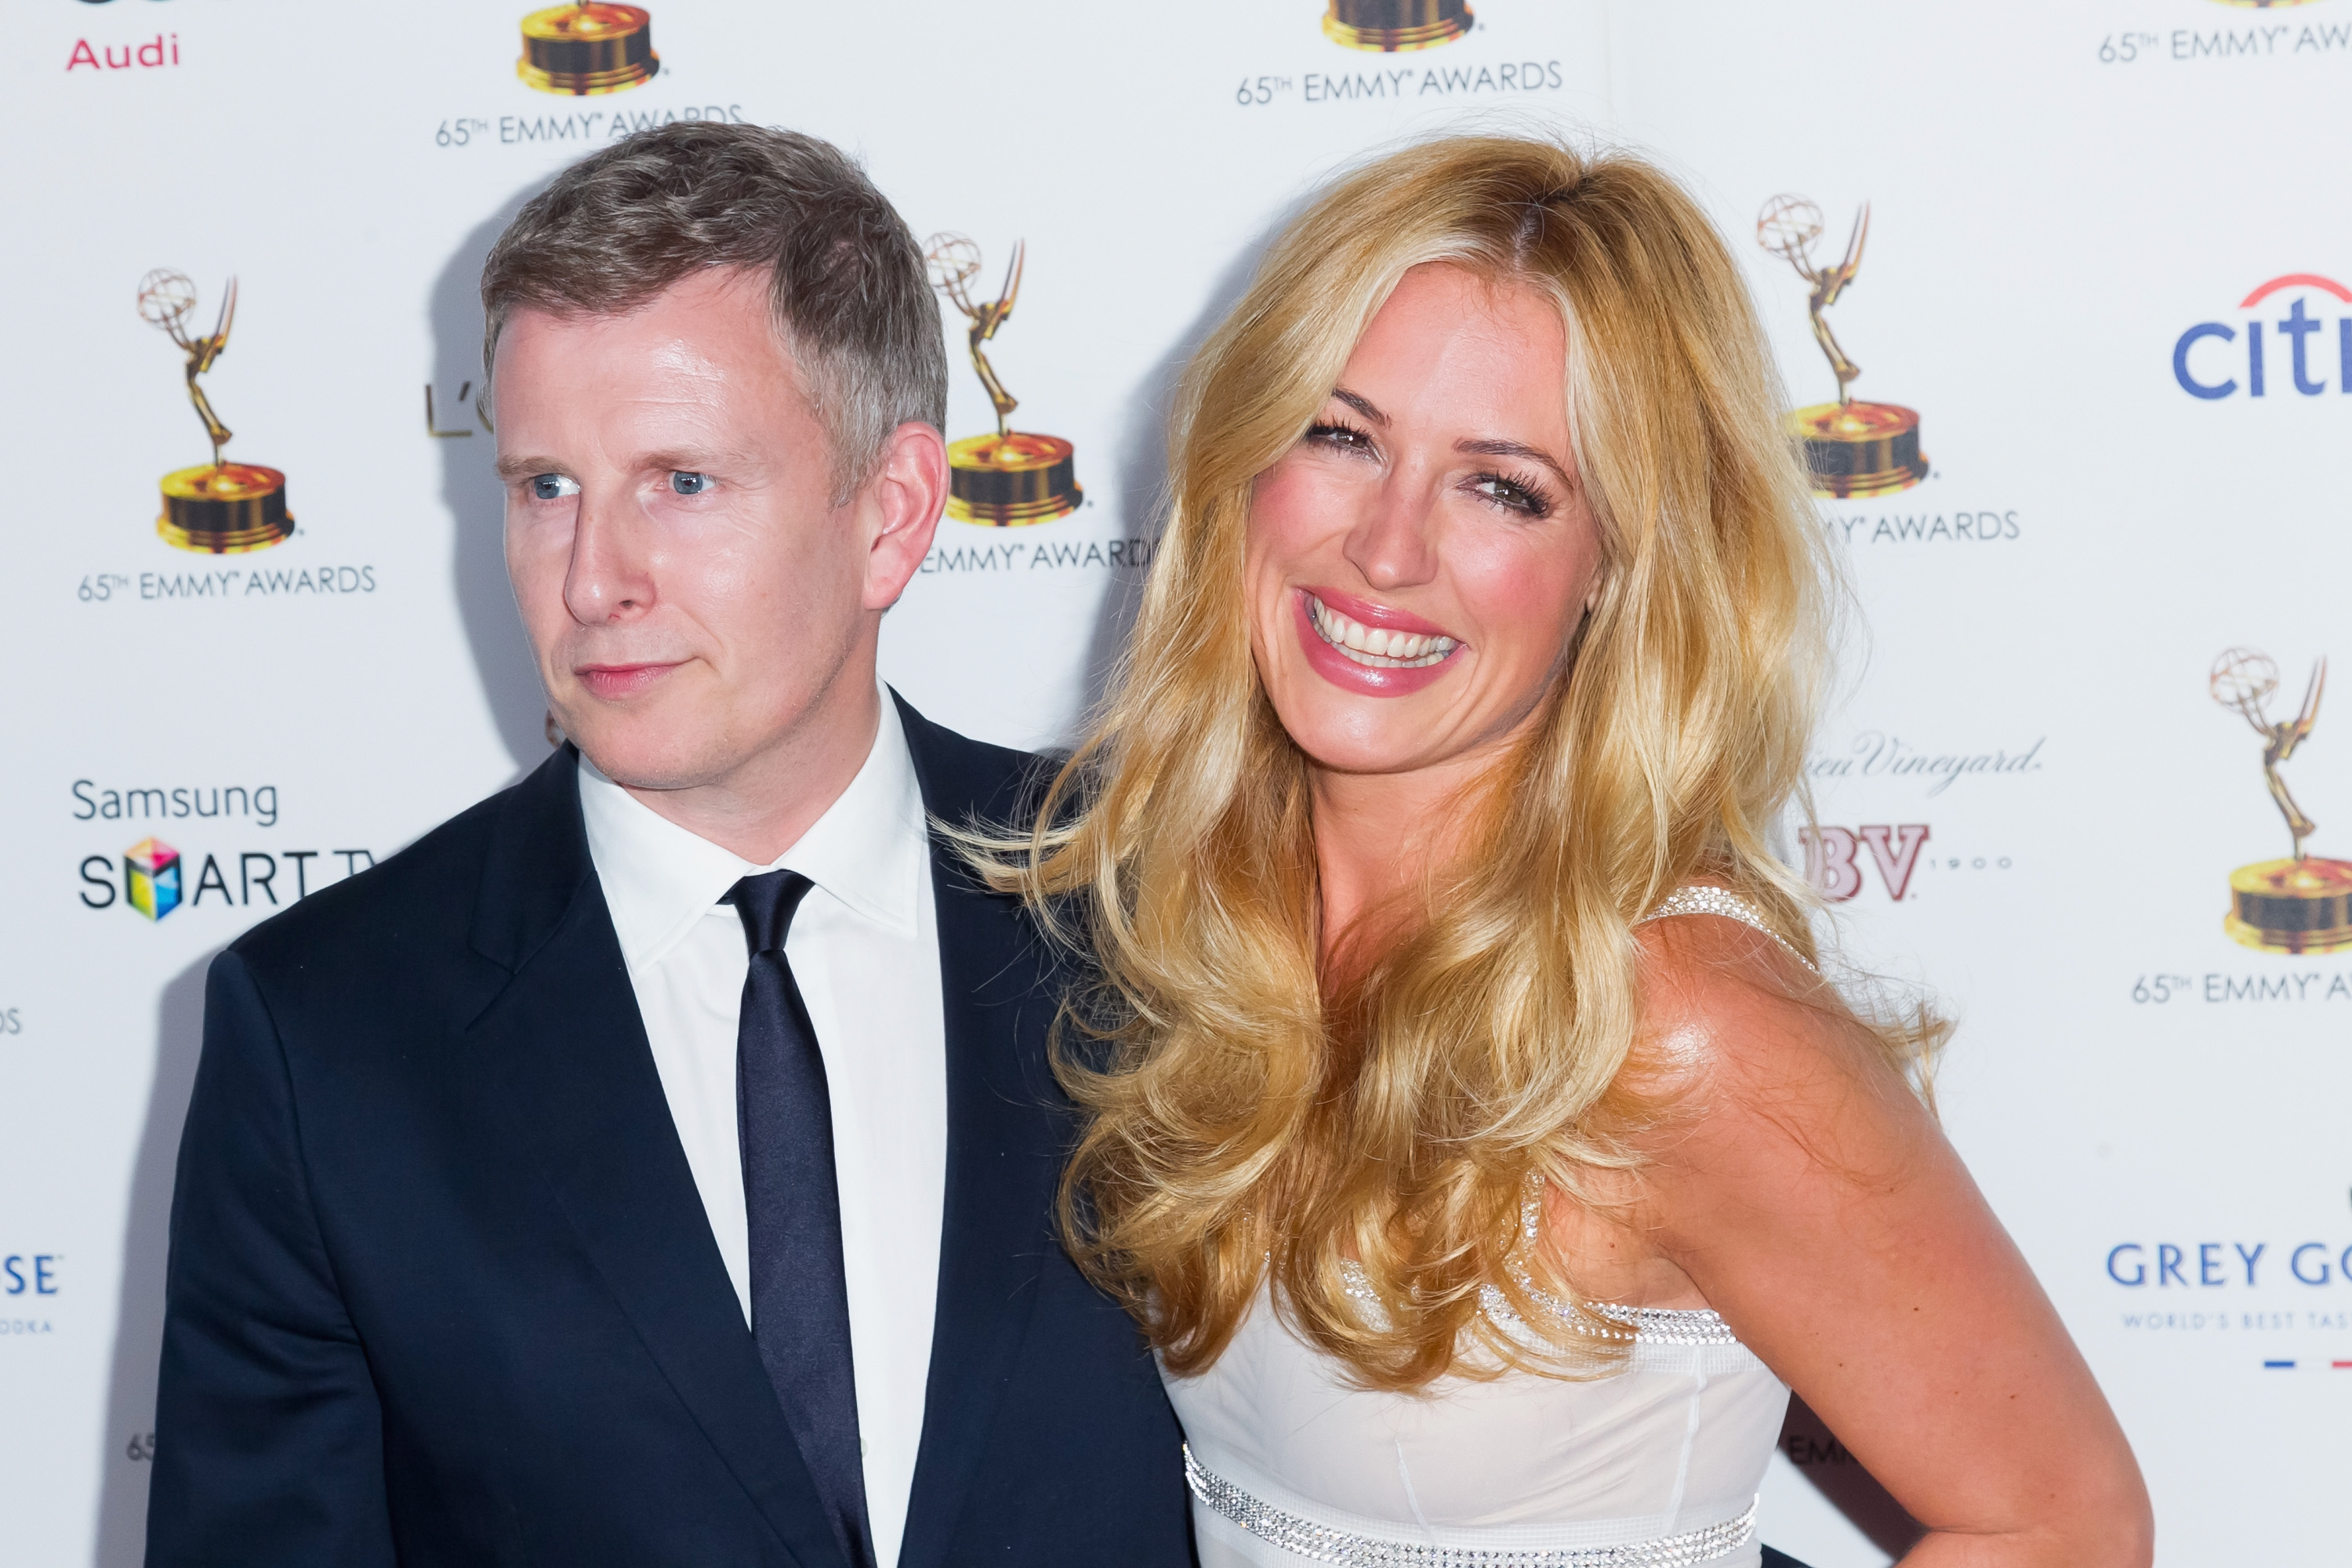 Cat Deeley 'desperate' for another baby but doctors say she is a 'geriatric mum'